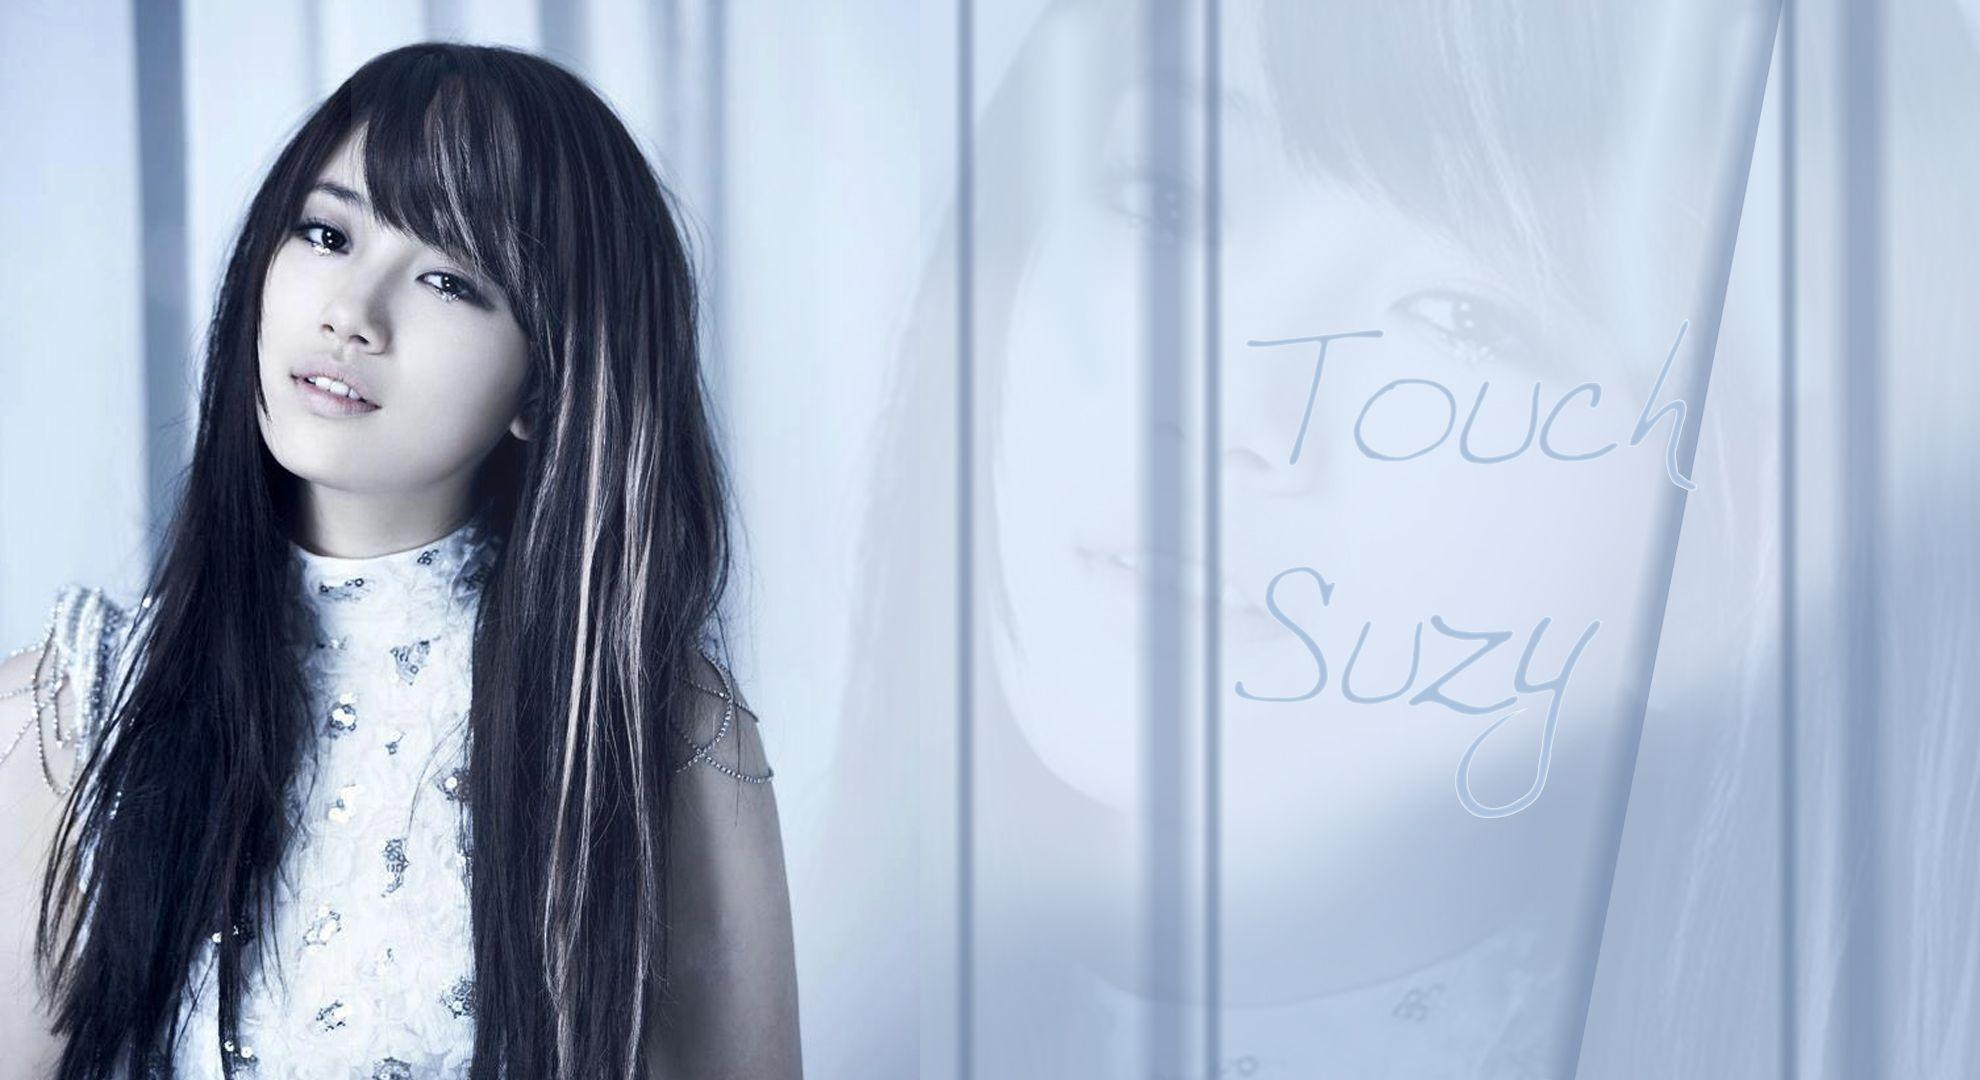 Bae Suzy graceful Full HD wallpaper Free - Download Bae Suzy ...